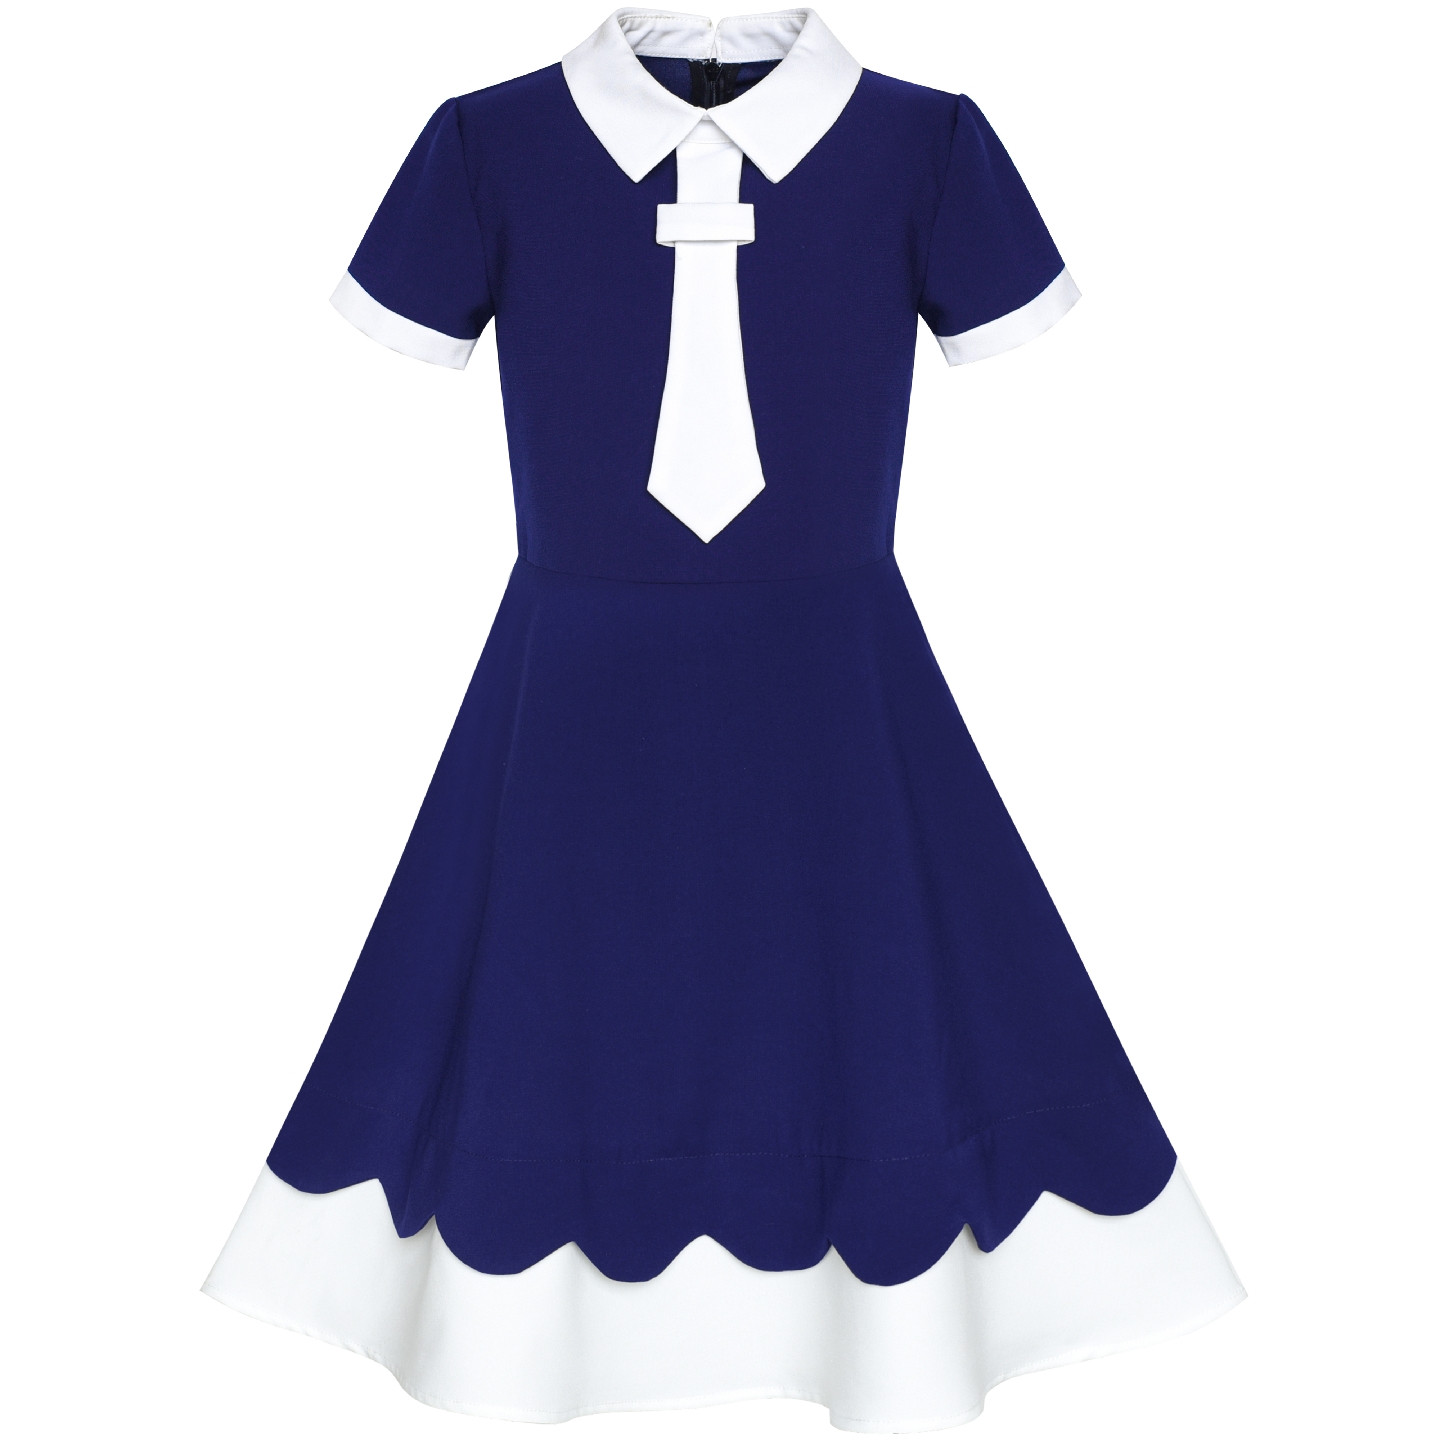 Girls Dress Back School Uniform Navy Blue White Collar Tie Short Sleeve 2019 Summer Princess Wedding Party Dresses ClothesGirls Dress Back School Uniform Navy Blue White Collar Tie Short Sleeve 2019 Summer Princess Wedding Party Dresses Clothes